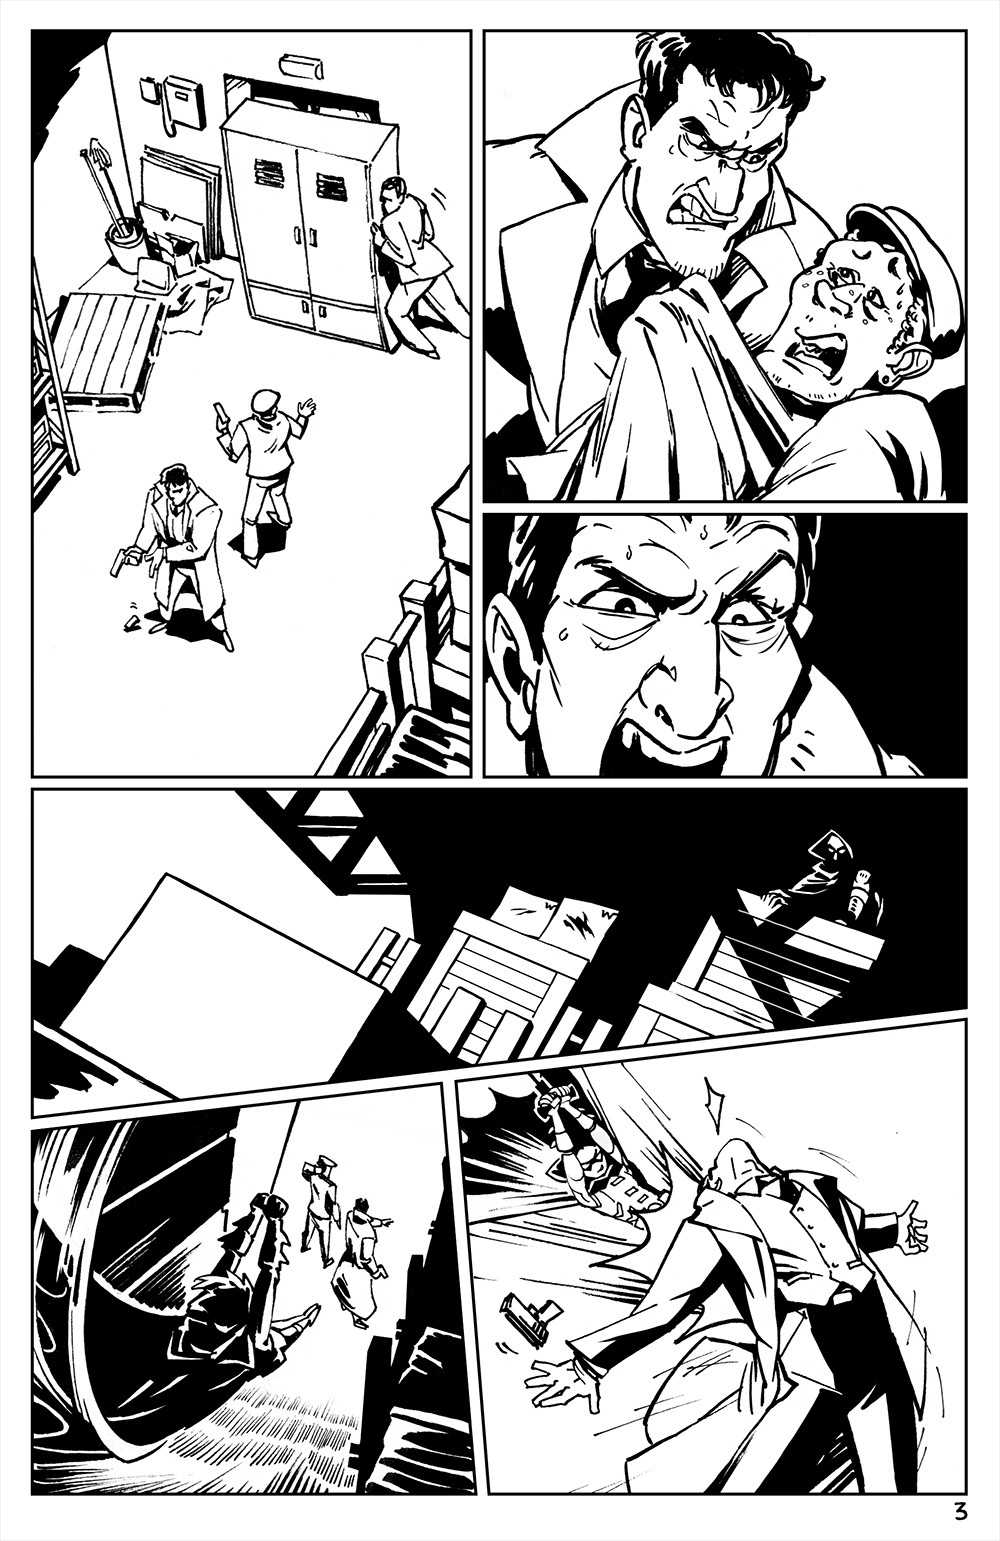 Guillaume poitel page3